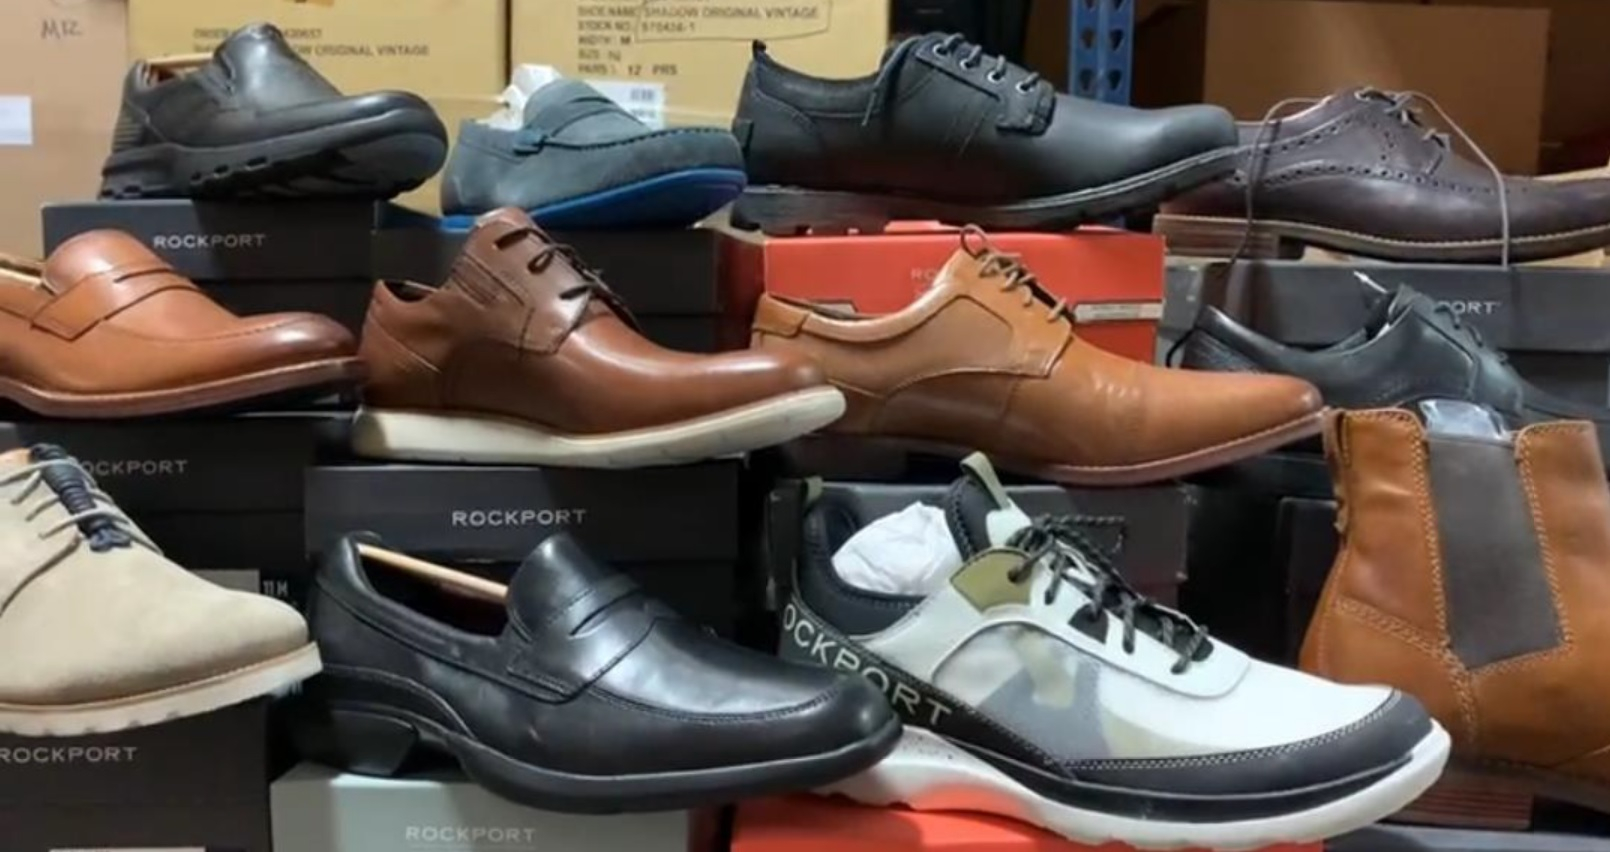 40437 - Rockport Men's First Quality Assort Styles & Sizes Shoes USA